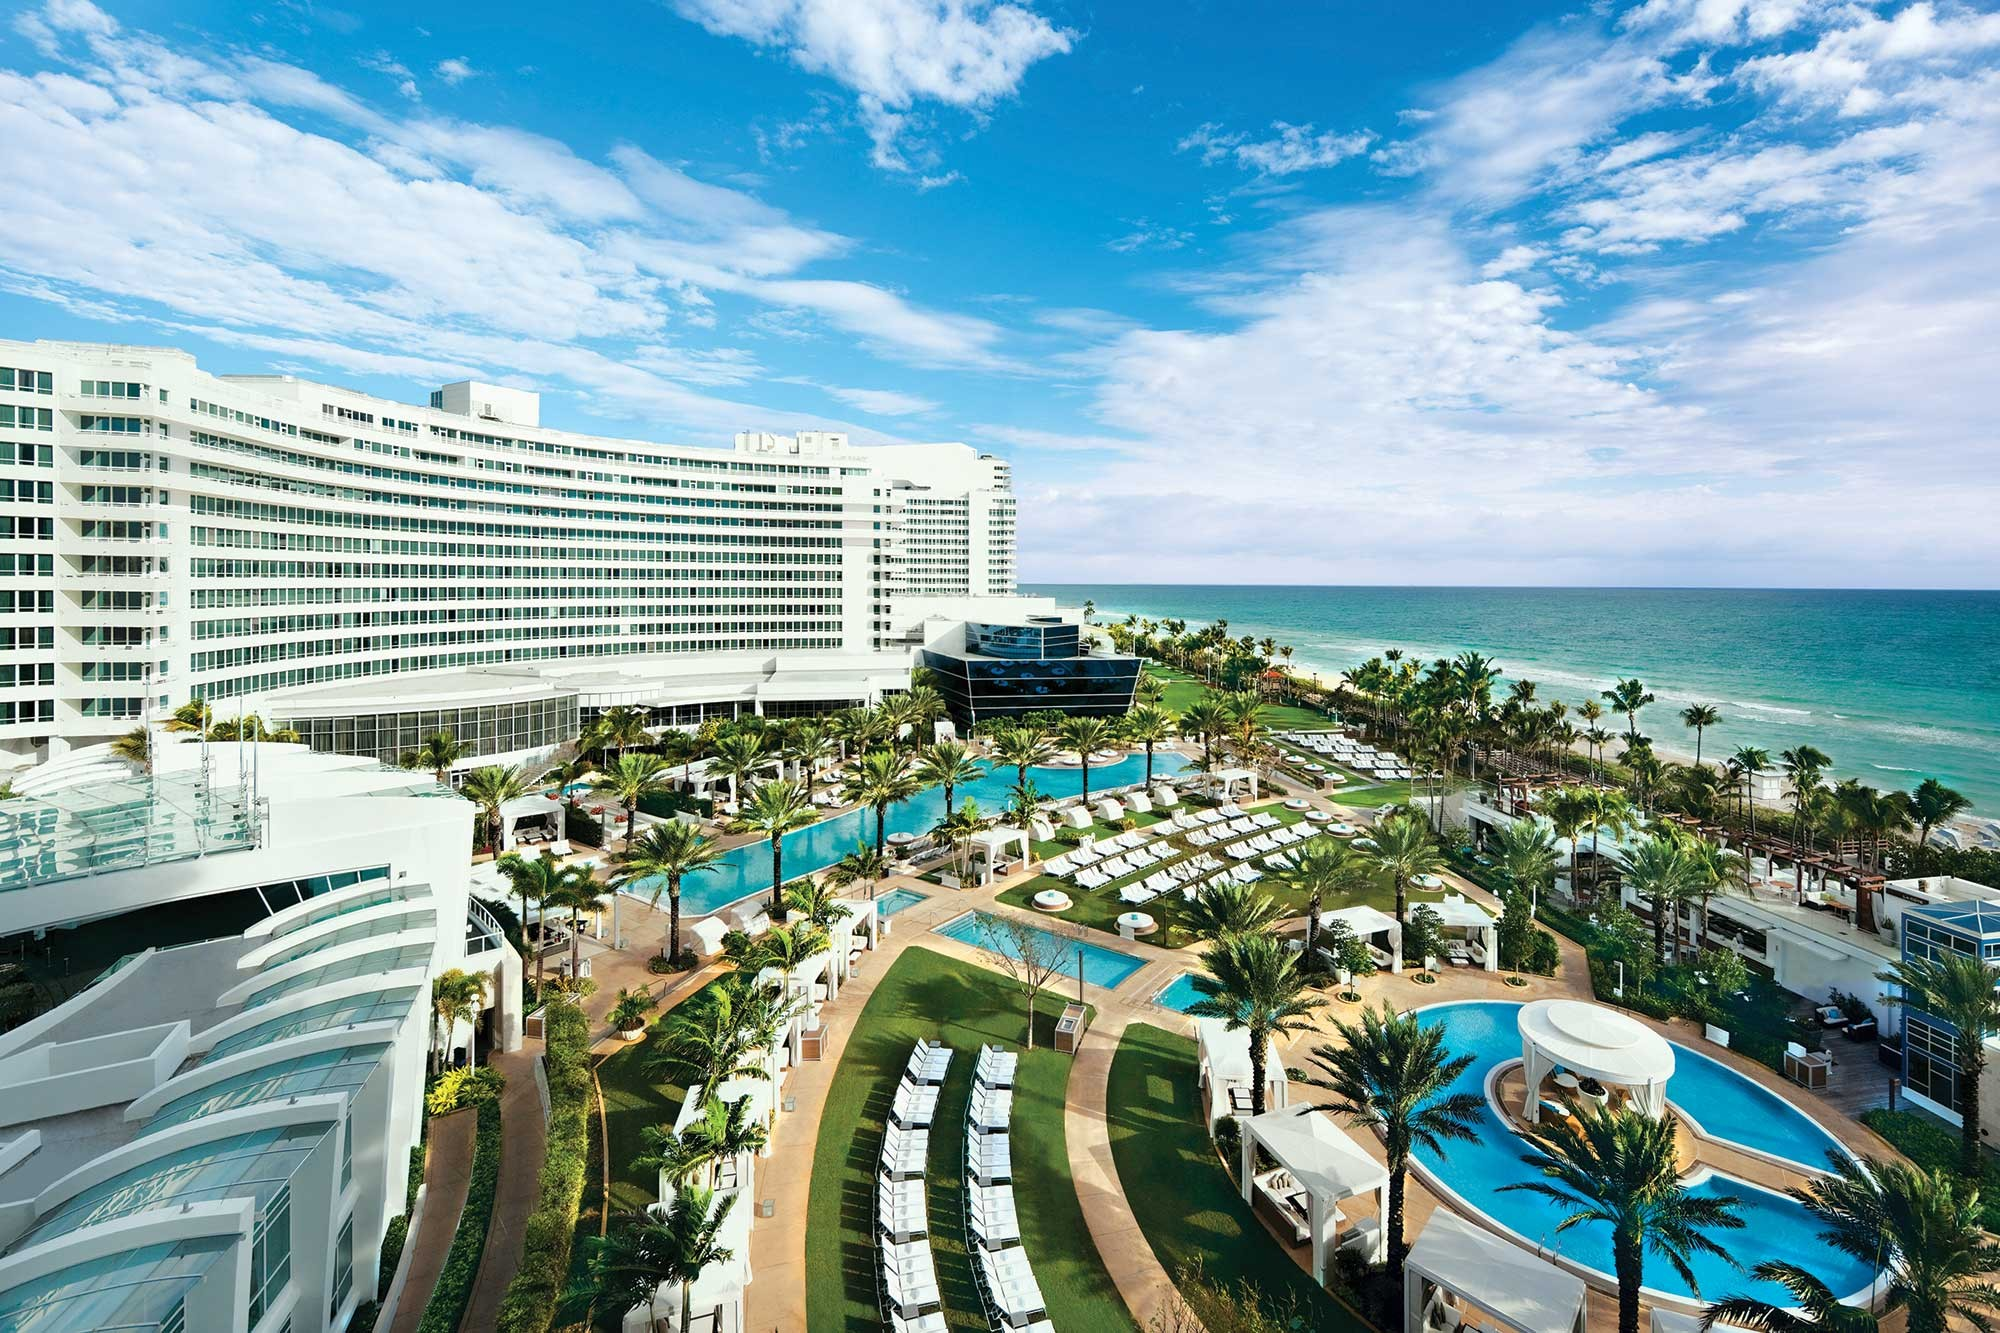 Miami's 10 most popular hotels, mapped - Curbed Miami